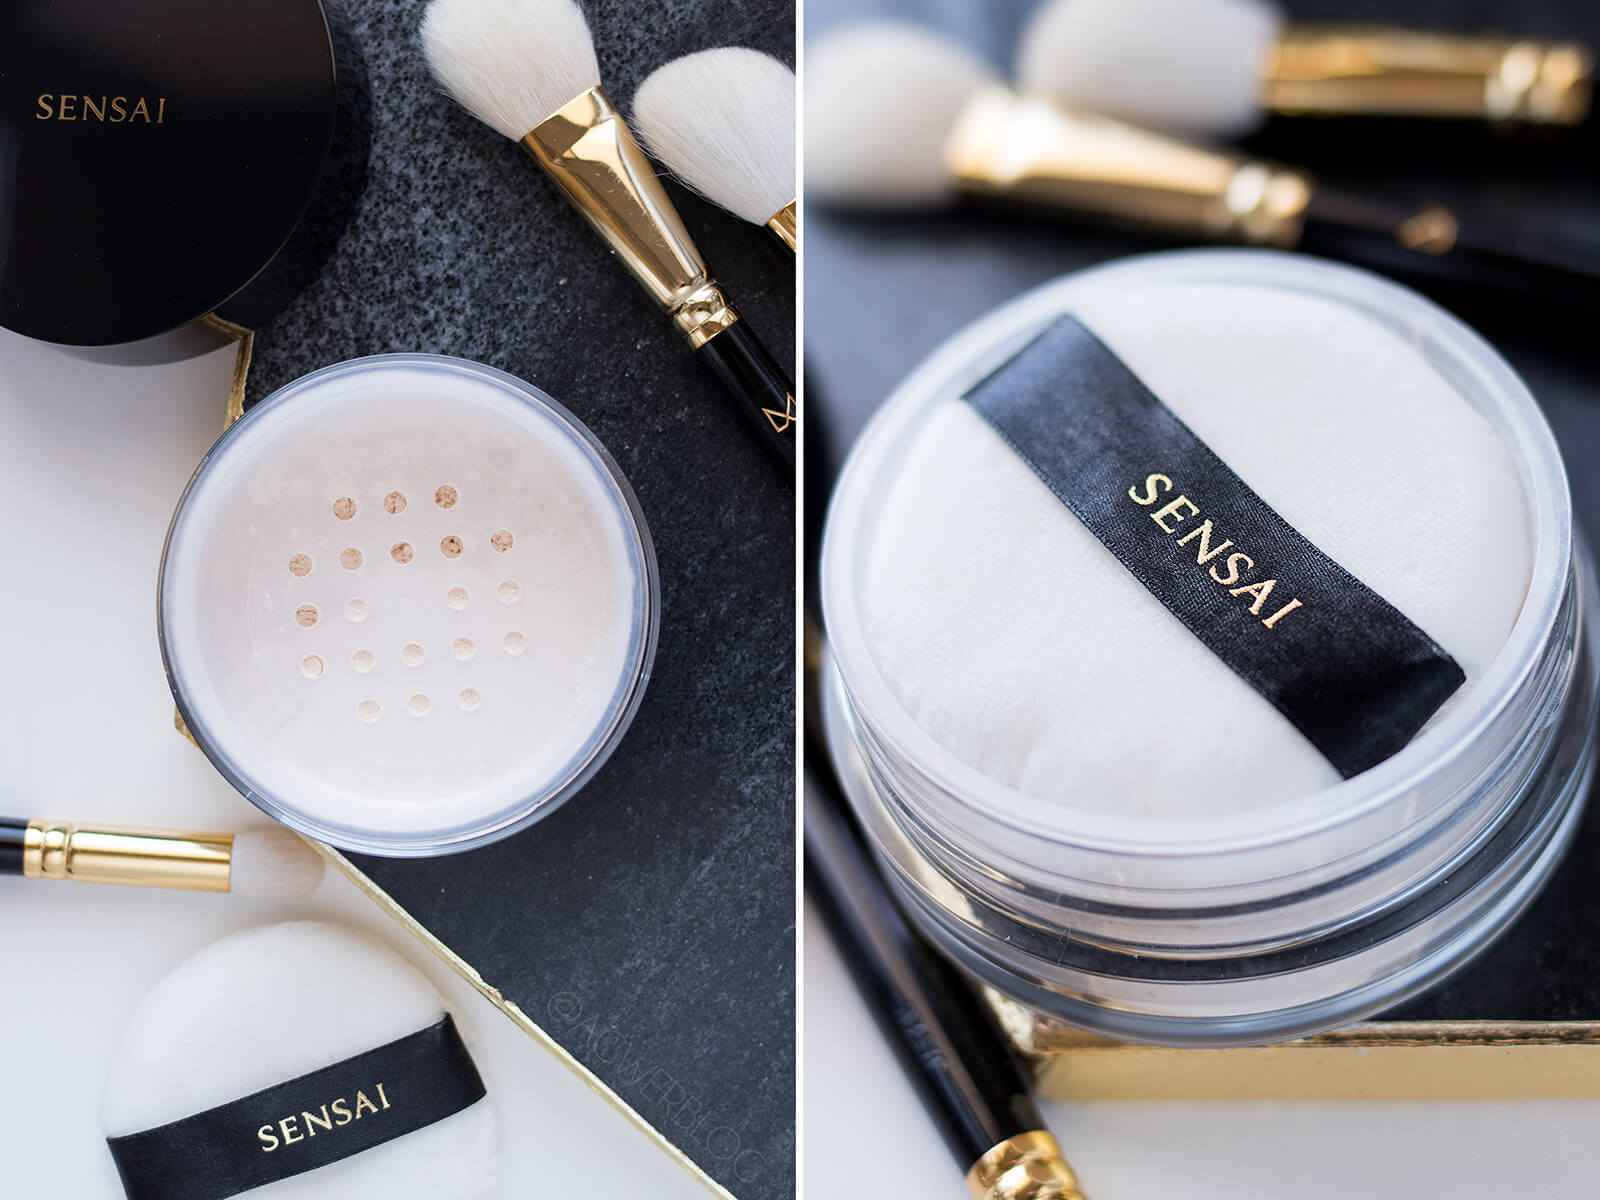 Sensai Translucent Loose Powder puder